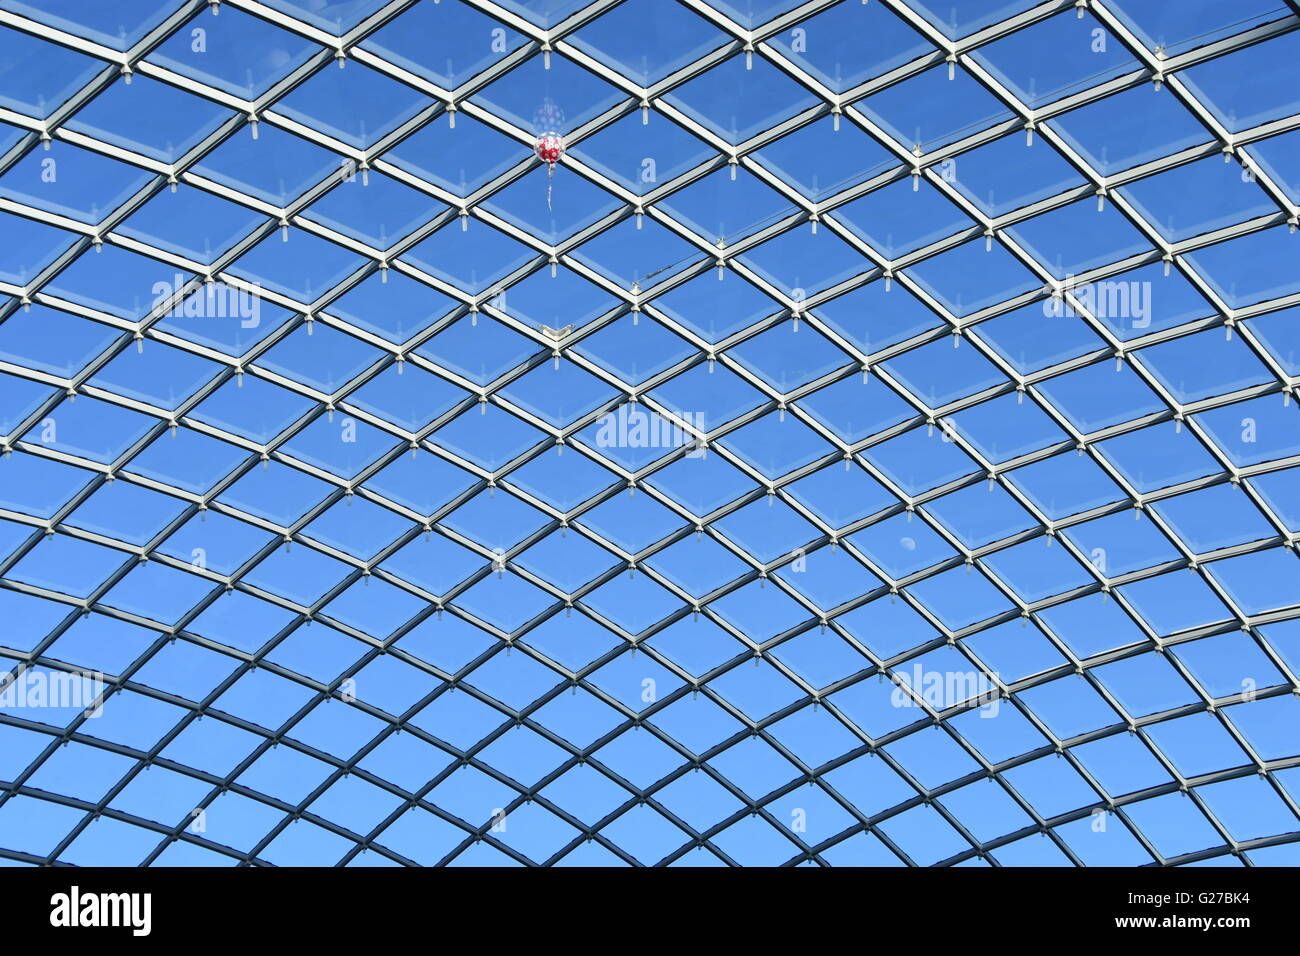 Glass roof of Trinity Shopping Centre, Leeds - Stock Image